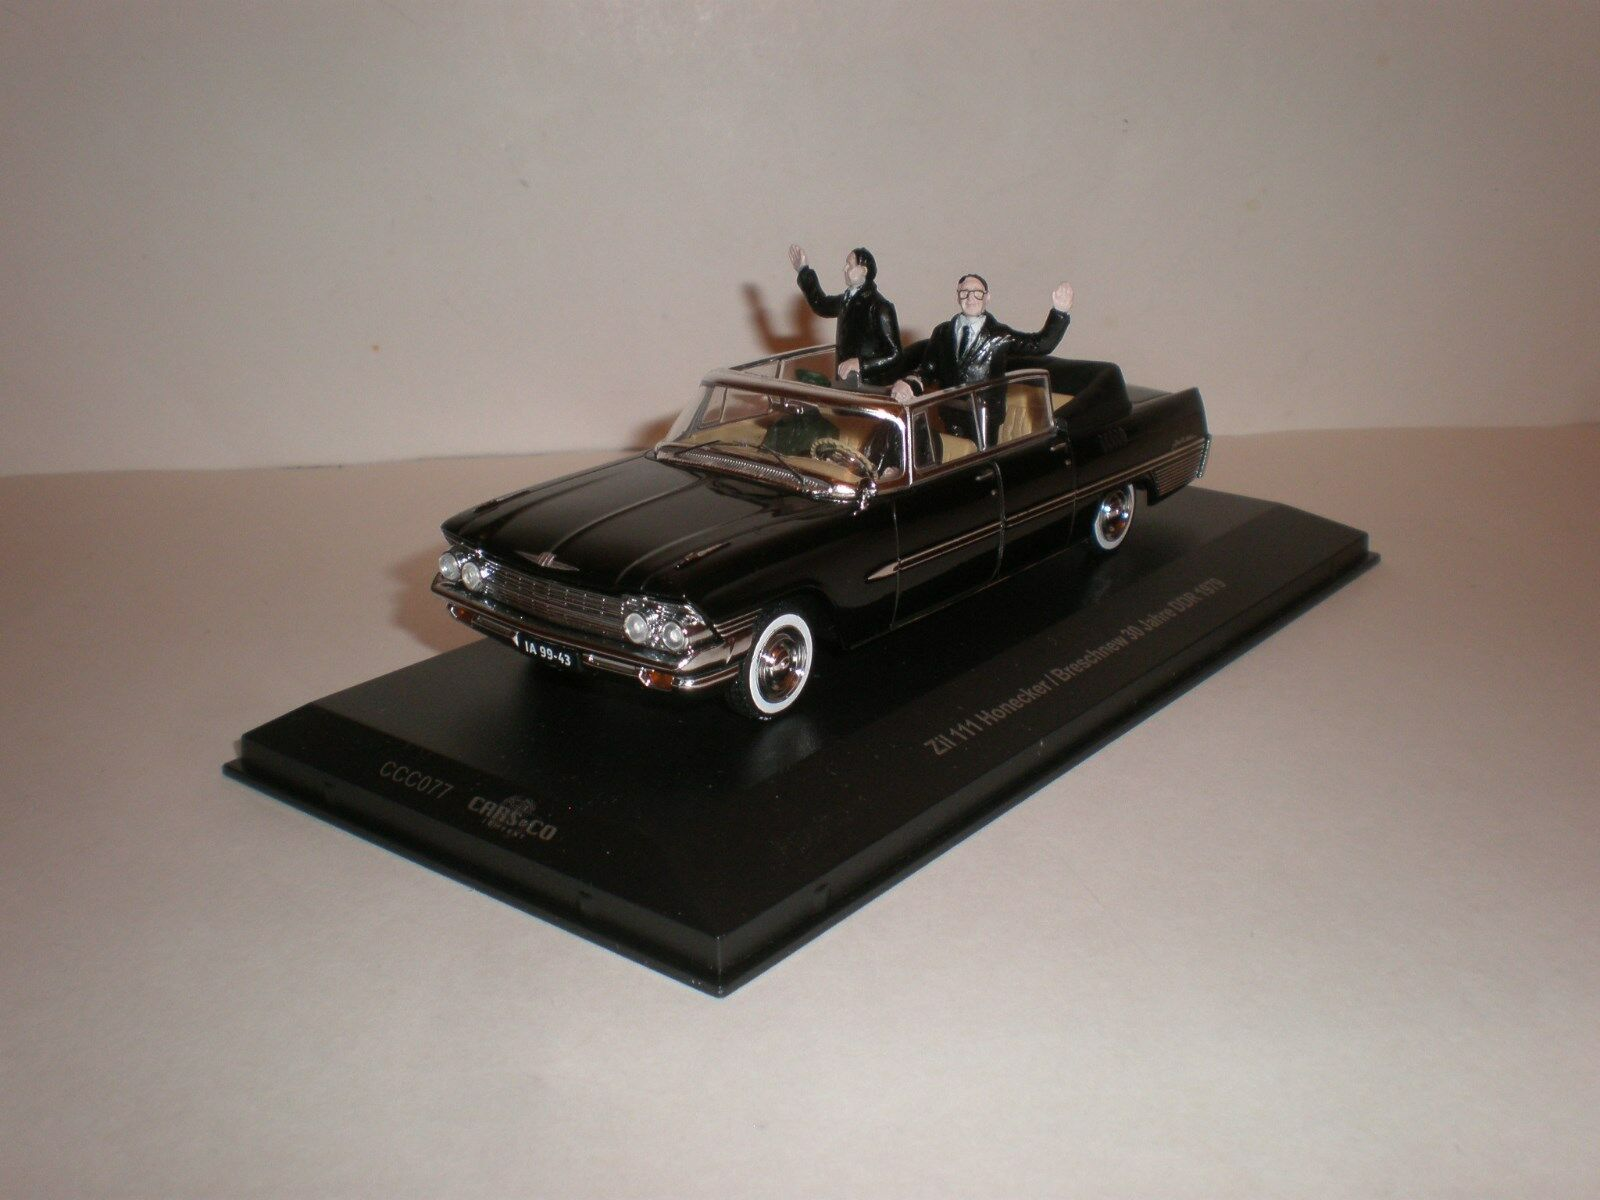 1 43 ZIL-111 Cabriolet with figurines Brezhnev and Honaker   IST IXO